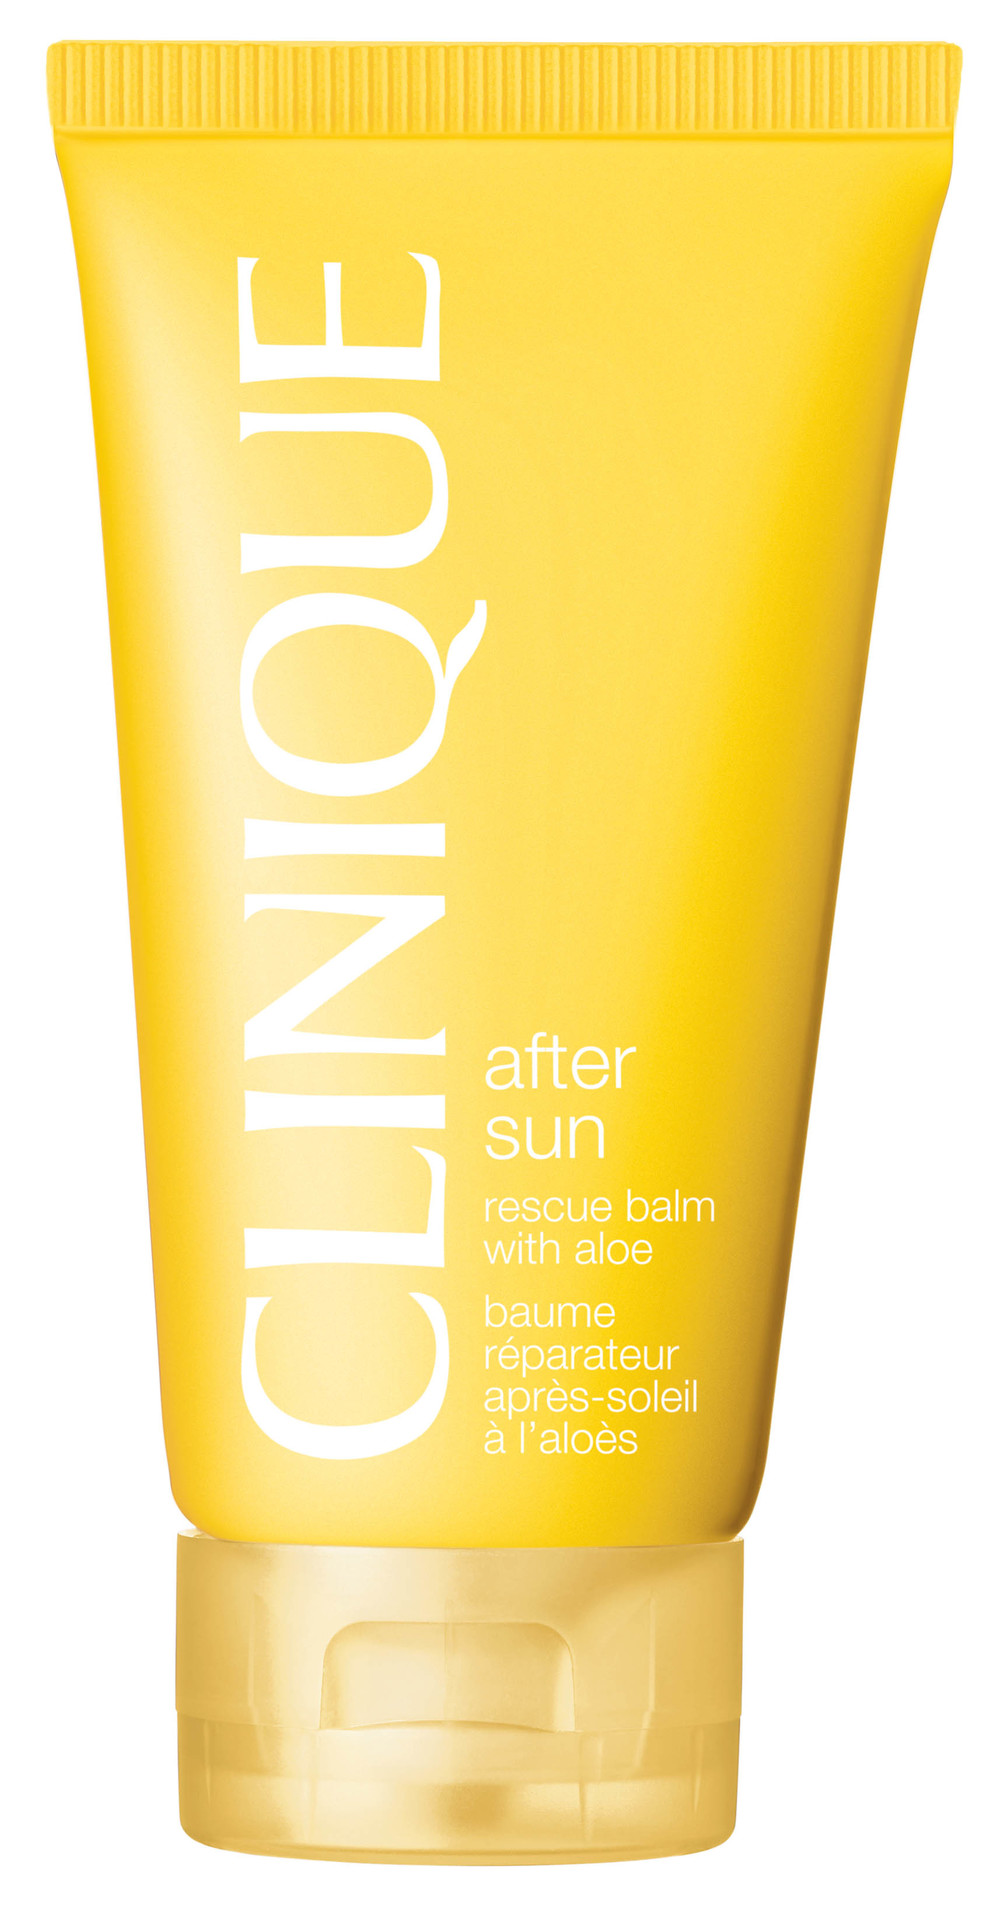 After Sun Rescue Balm Icon - INTL.JPG